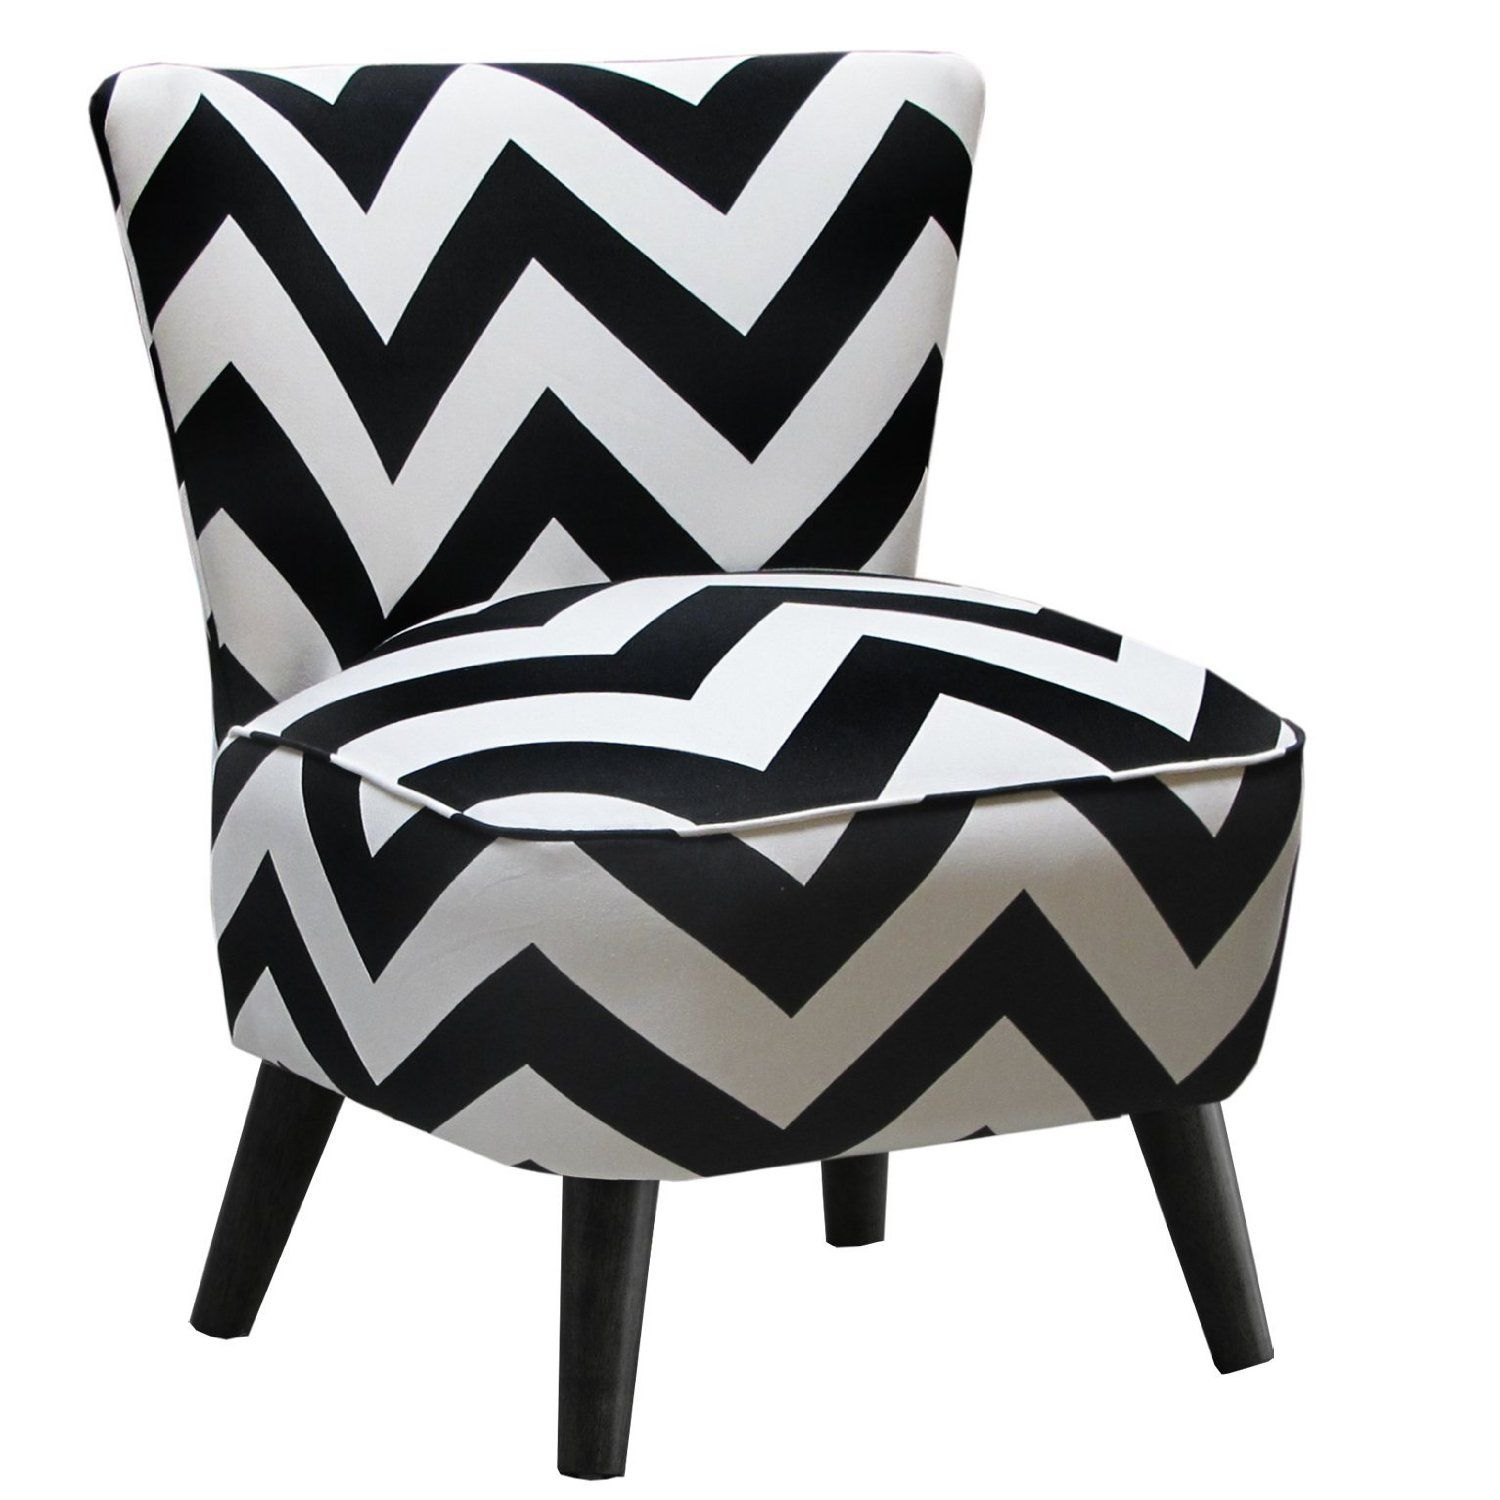 ^ 1000+ images about Black and White on Pinterest  Furniture ...